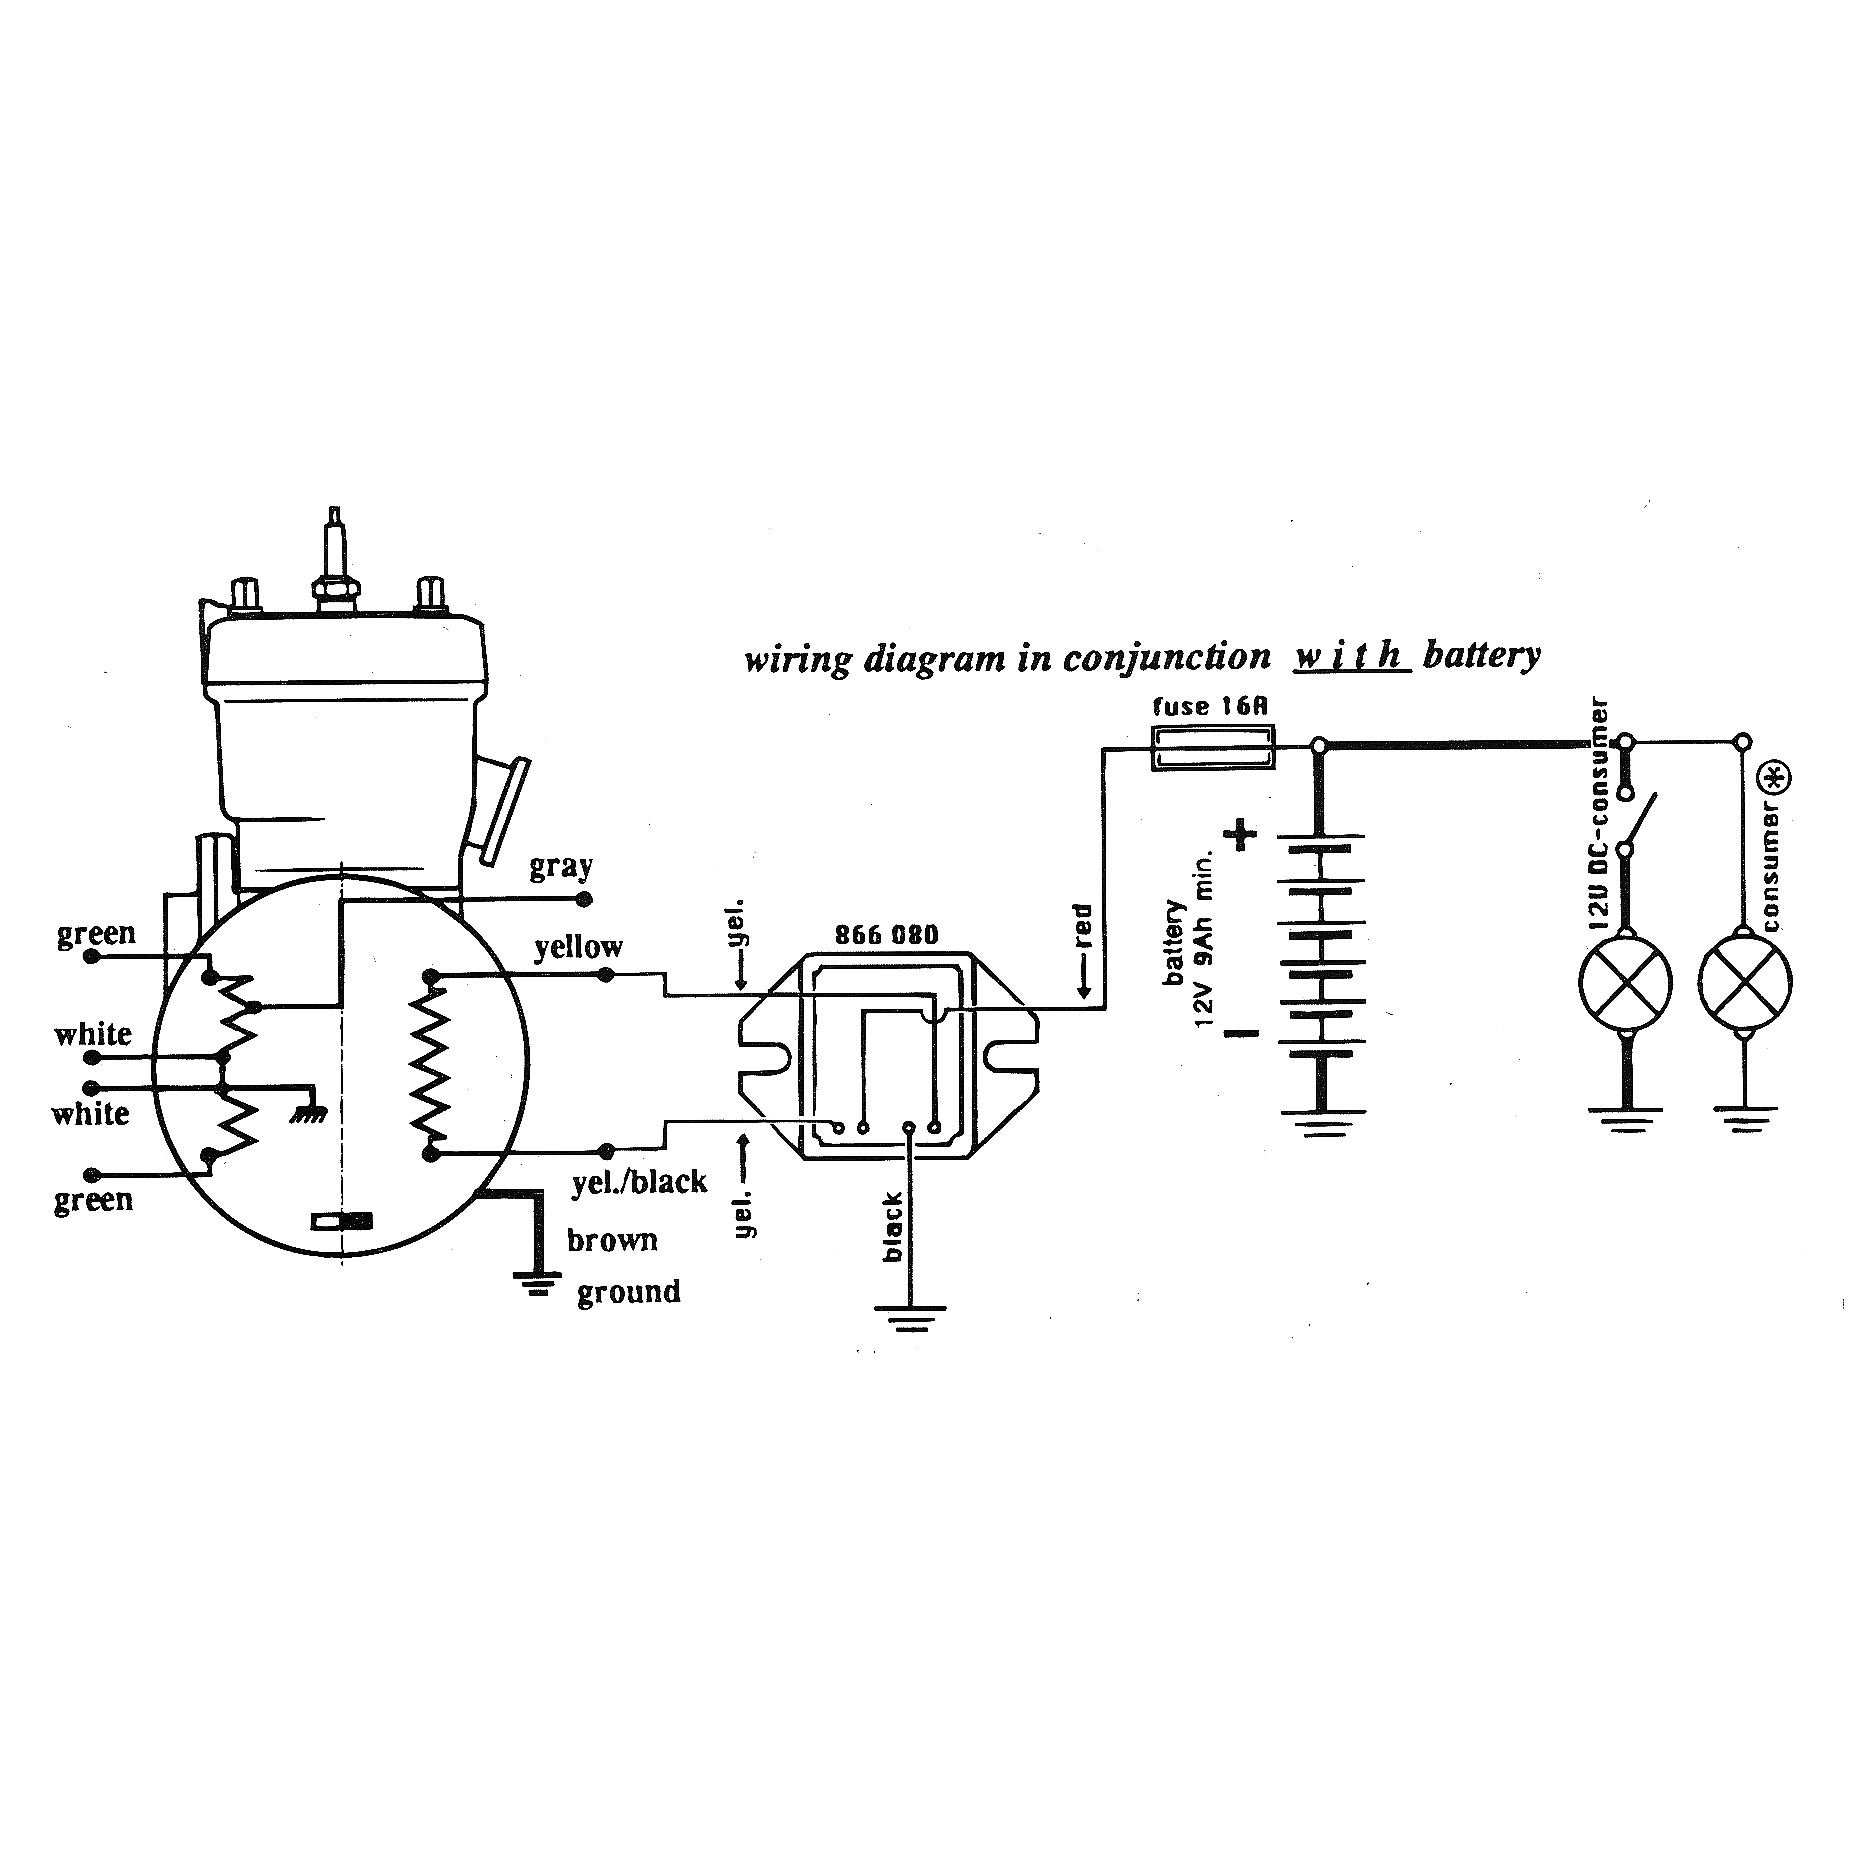 866 080_wbattery tympanium regulator rectifier regulator rectifiers 2 stroke tympanium wiring diagram at n-0.co